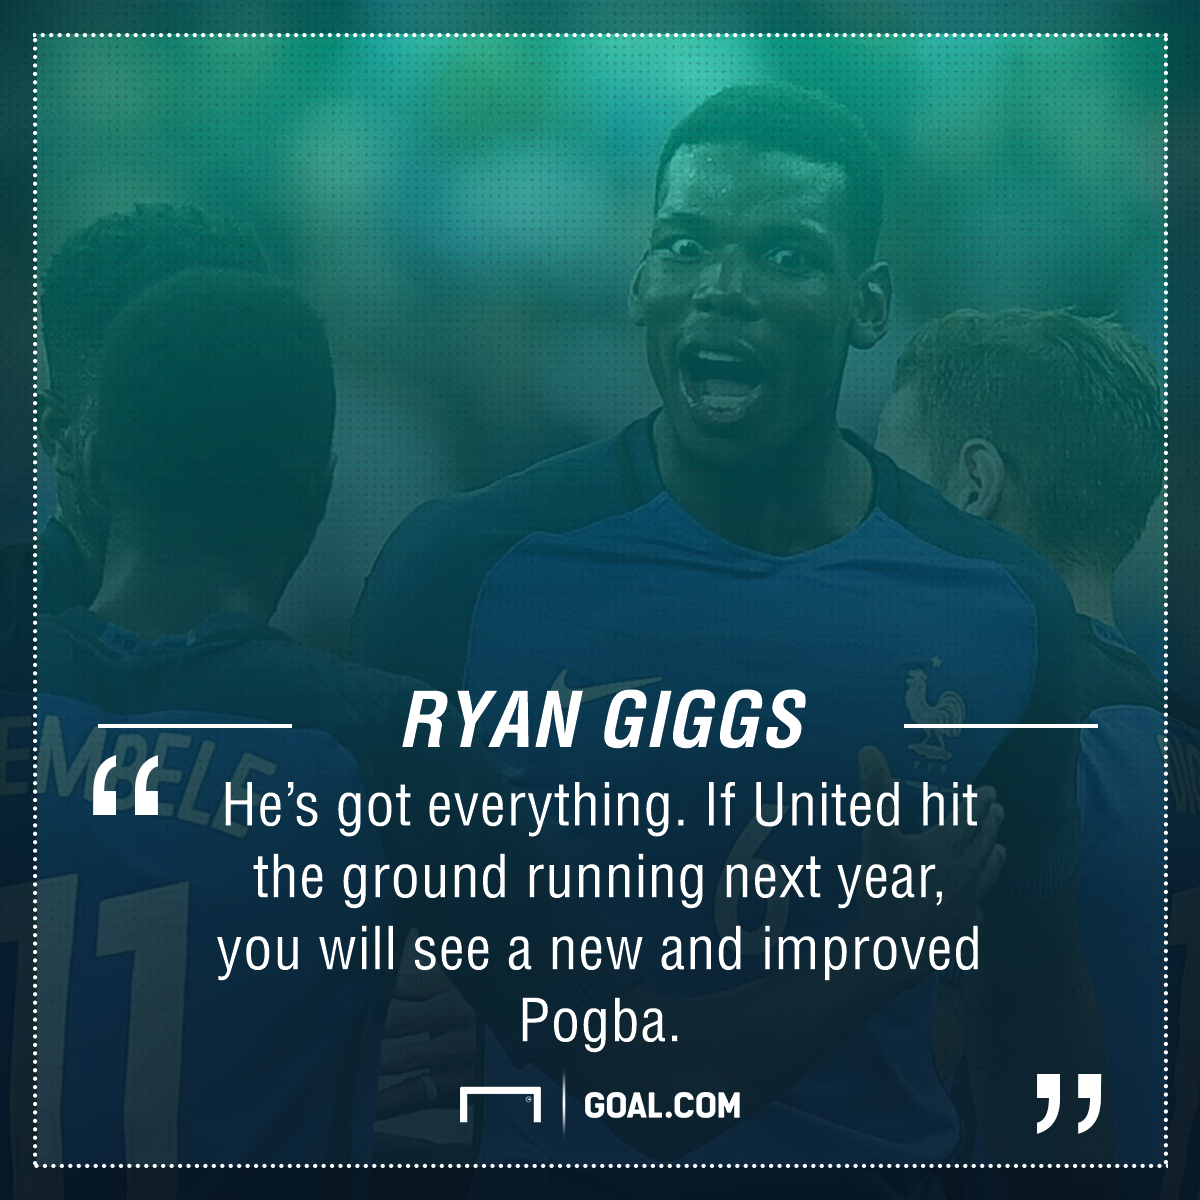 Paul Pogba: Ryan Giggs explains how Manchester United star can improve next season